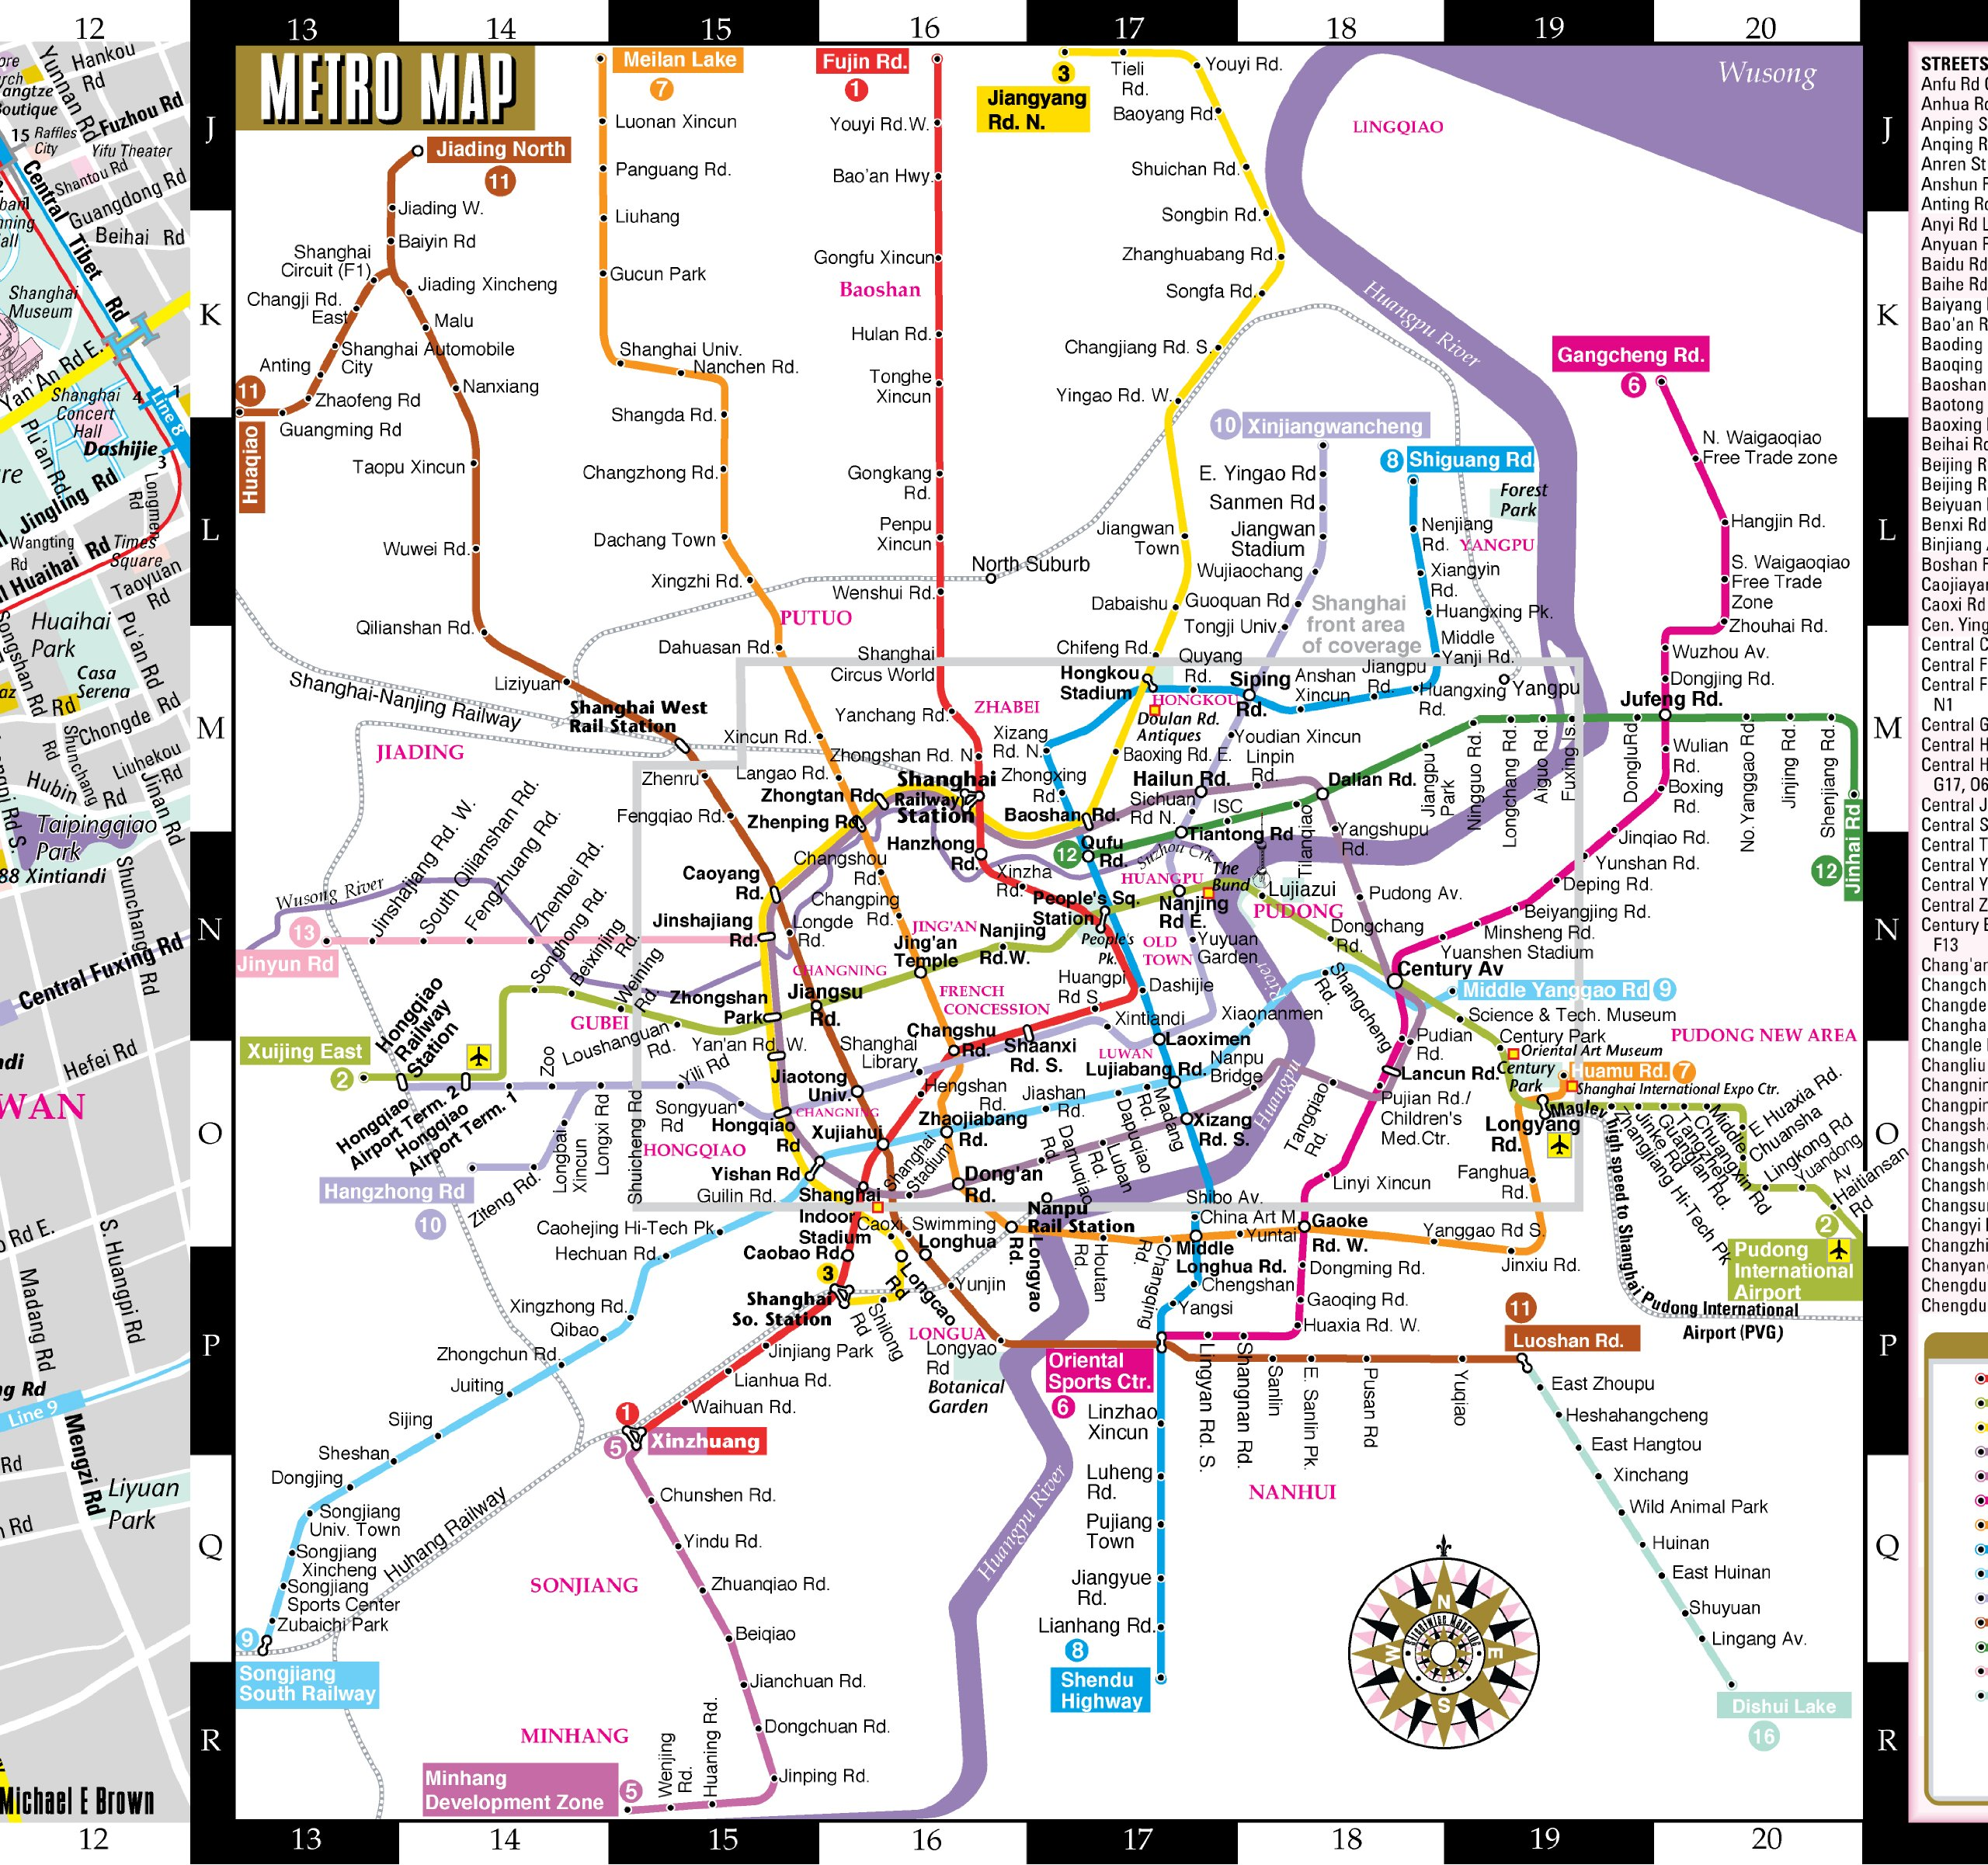 Streetwise Shanghai Map Laminated City Center Street Map of